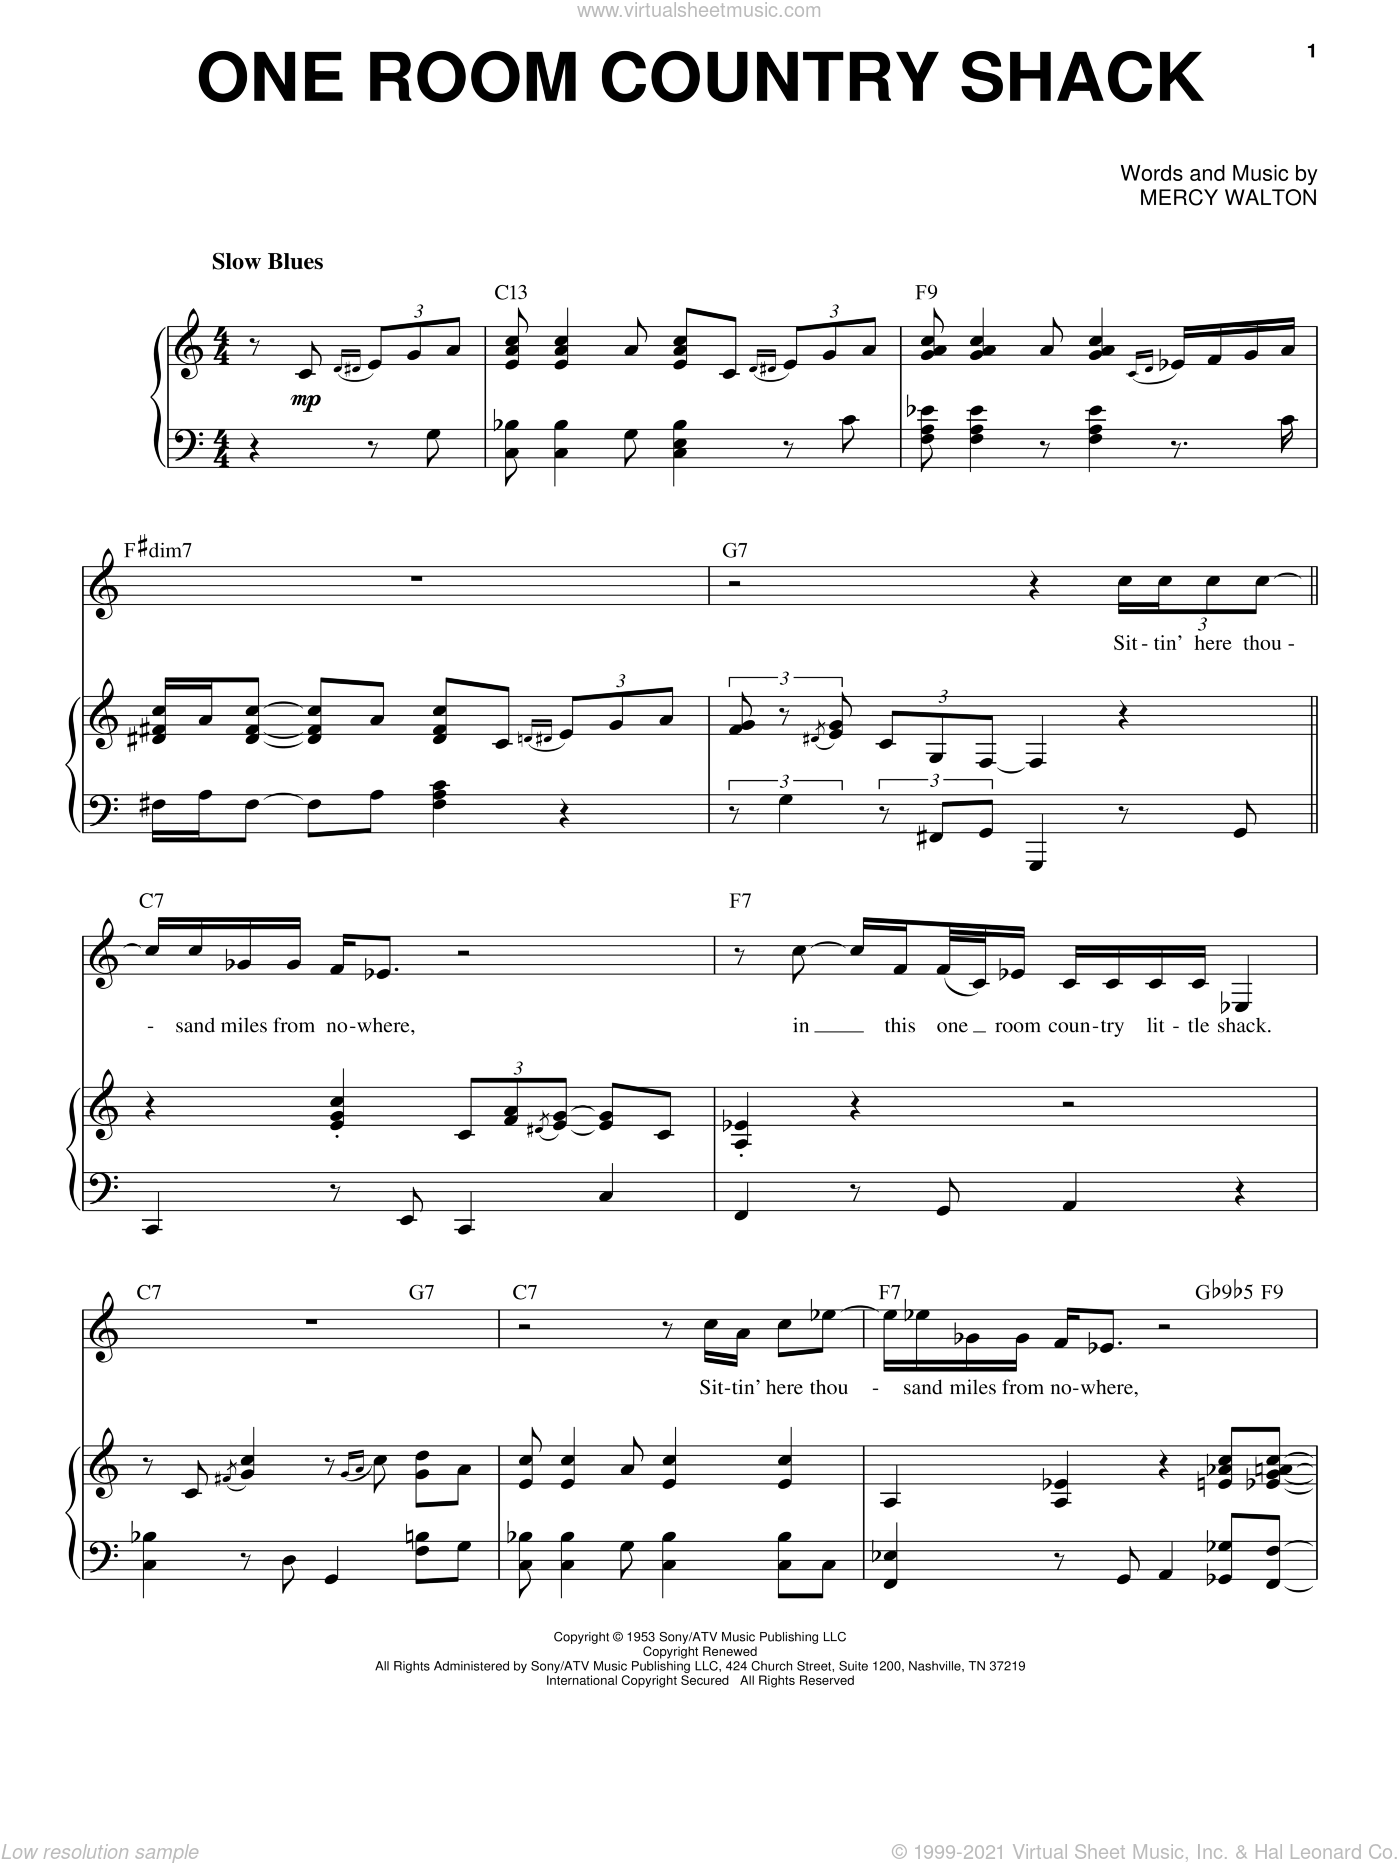 One Room Country Shack sheet music for voice and piano by Mose Allison and Mercy Walton, intermediate skill level